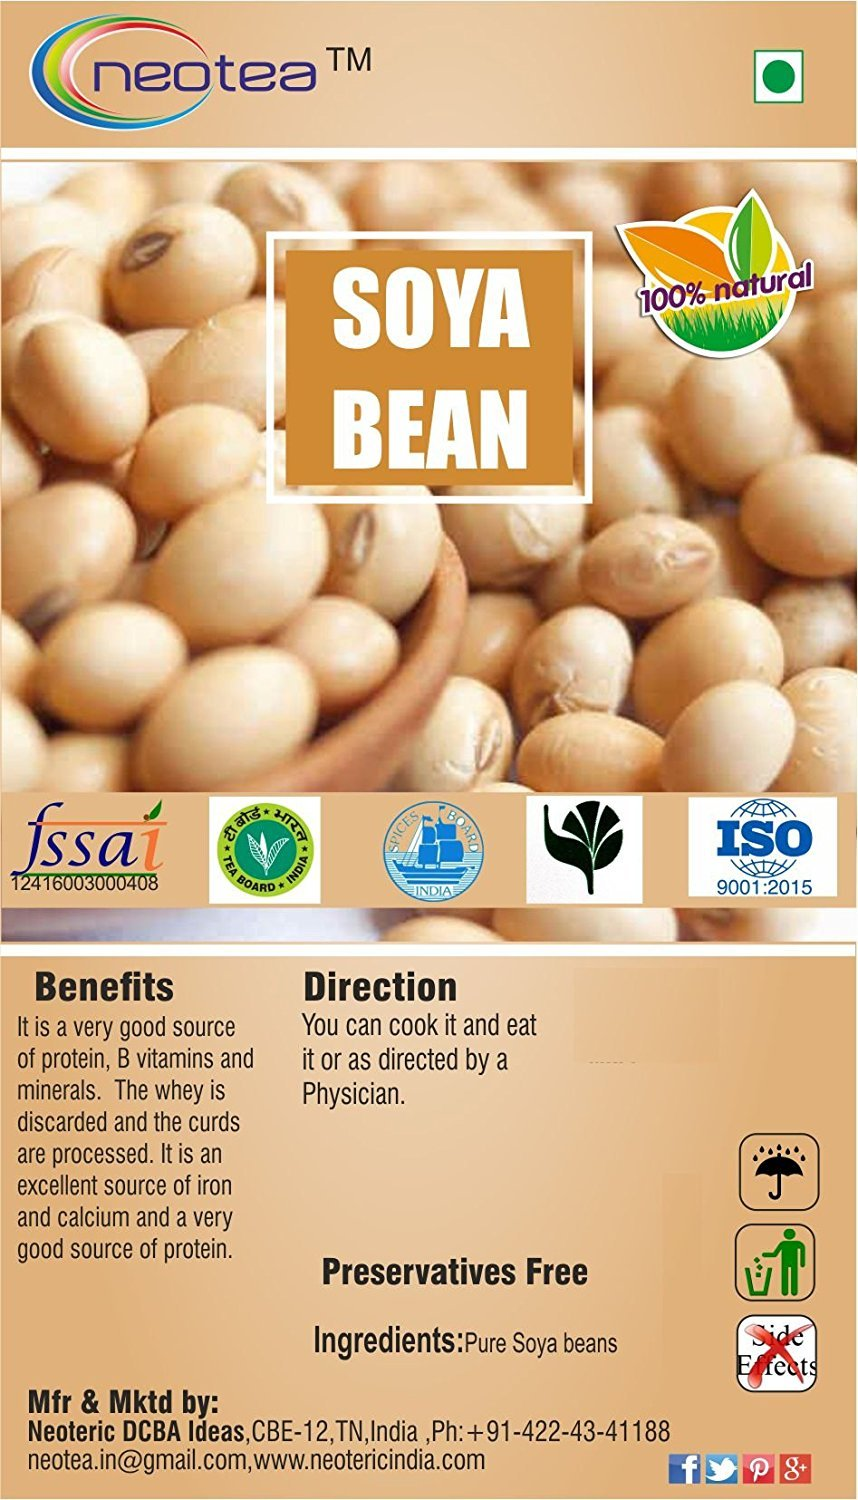 Neotea Soya Bean, 250g by Neotea (Image #1)